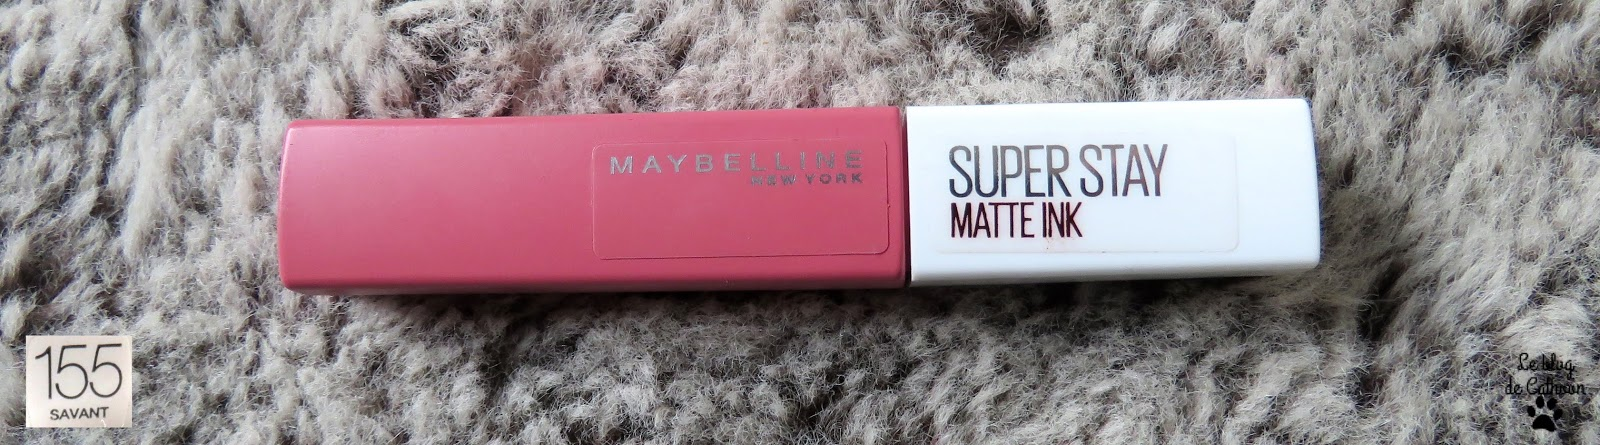 Superstay Matte Ink de Maybelline